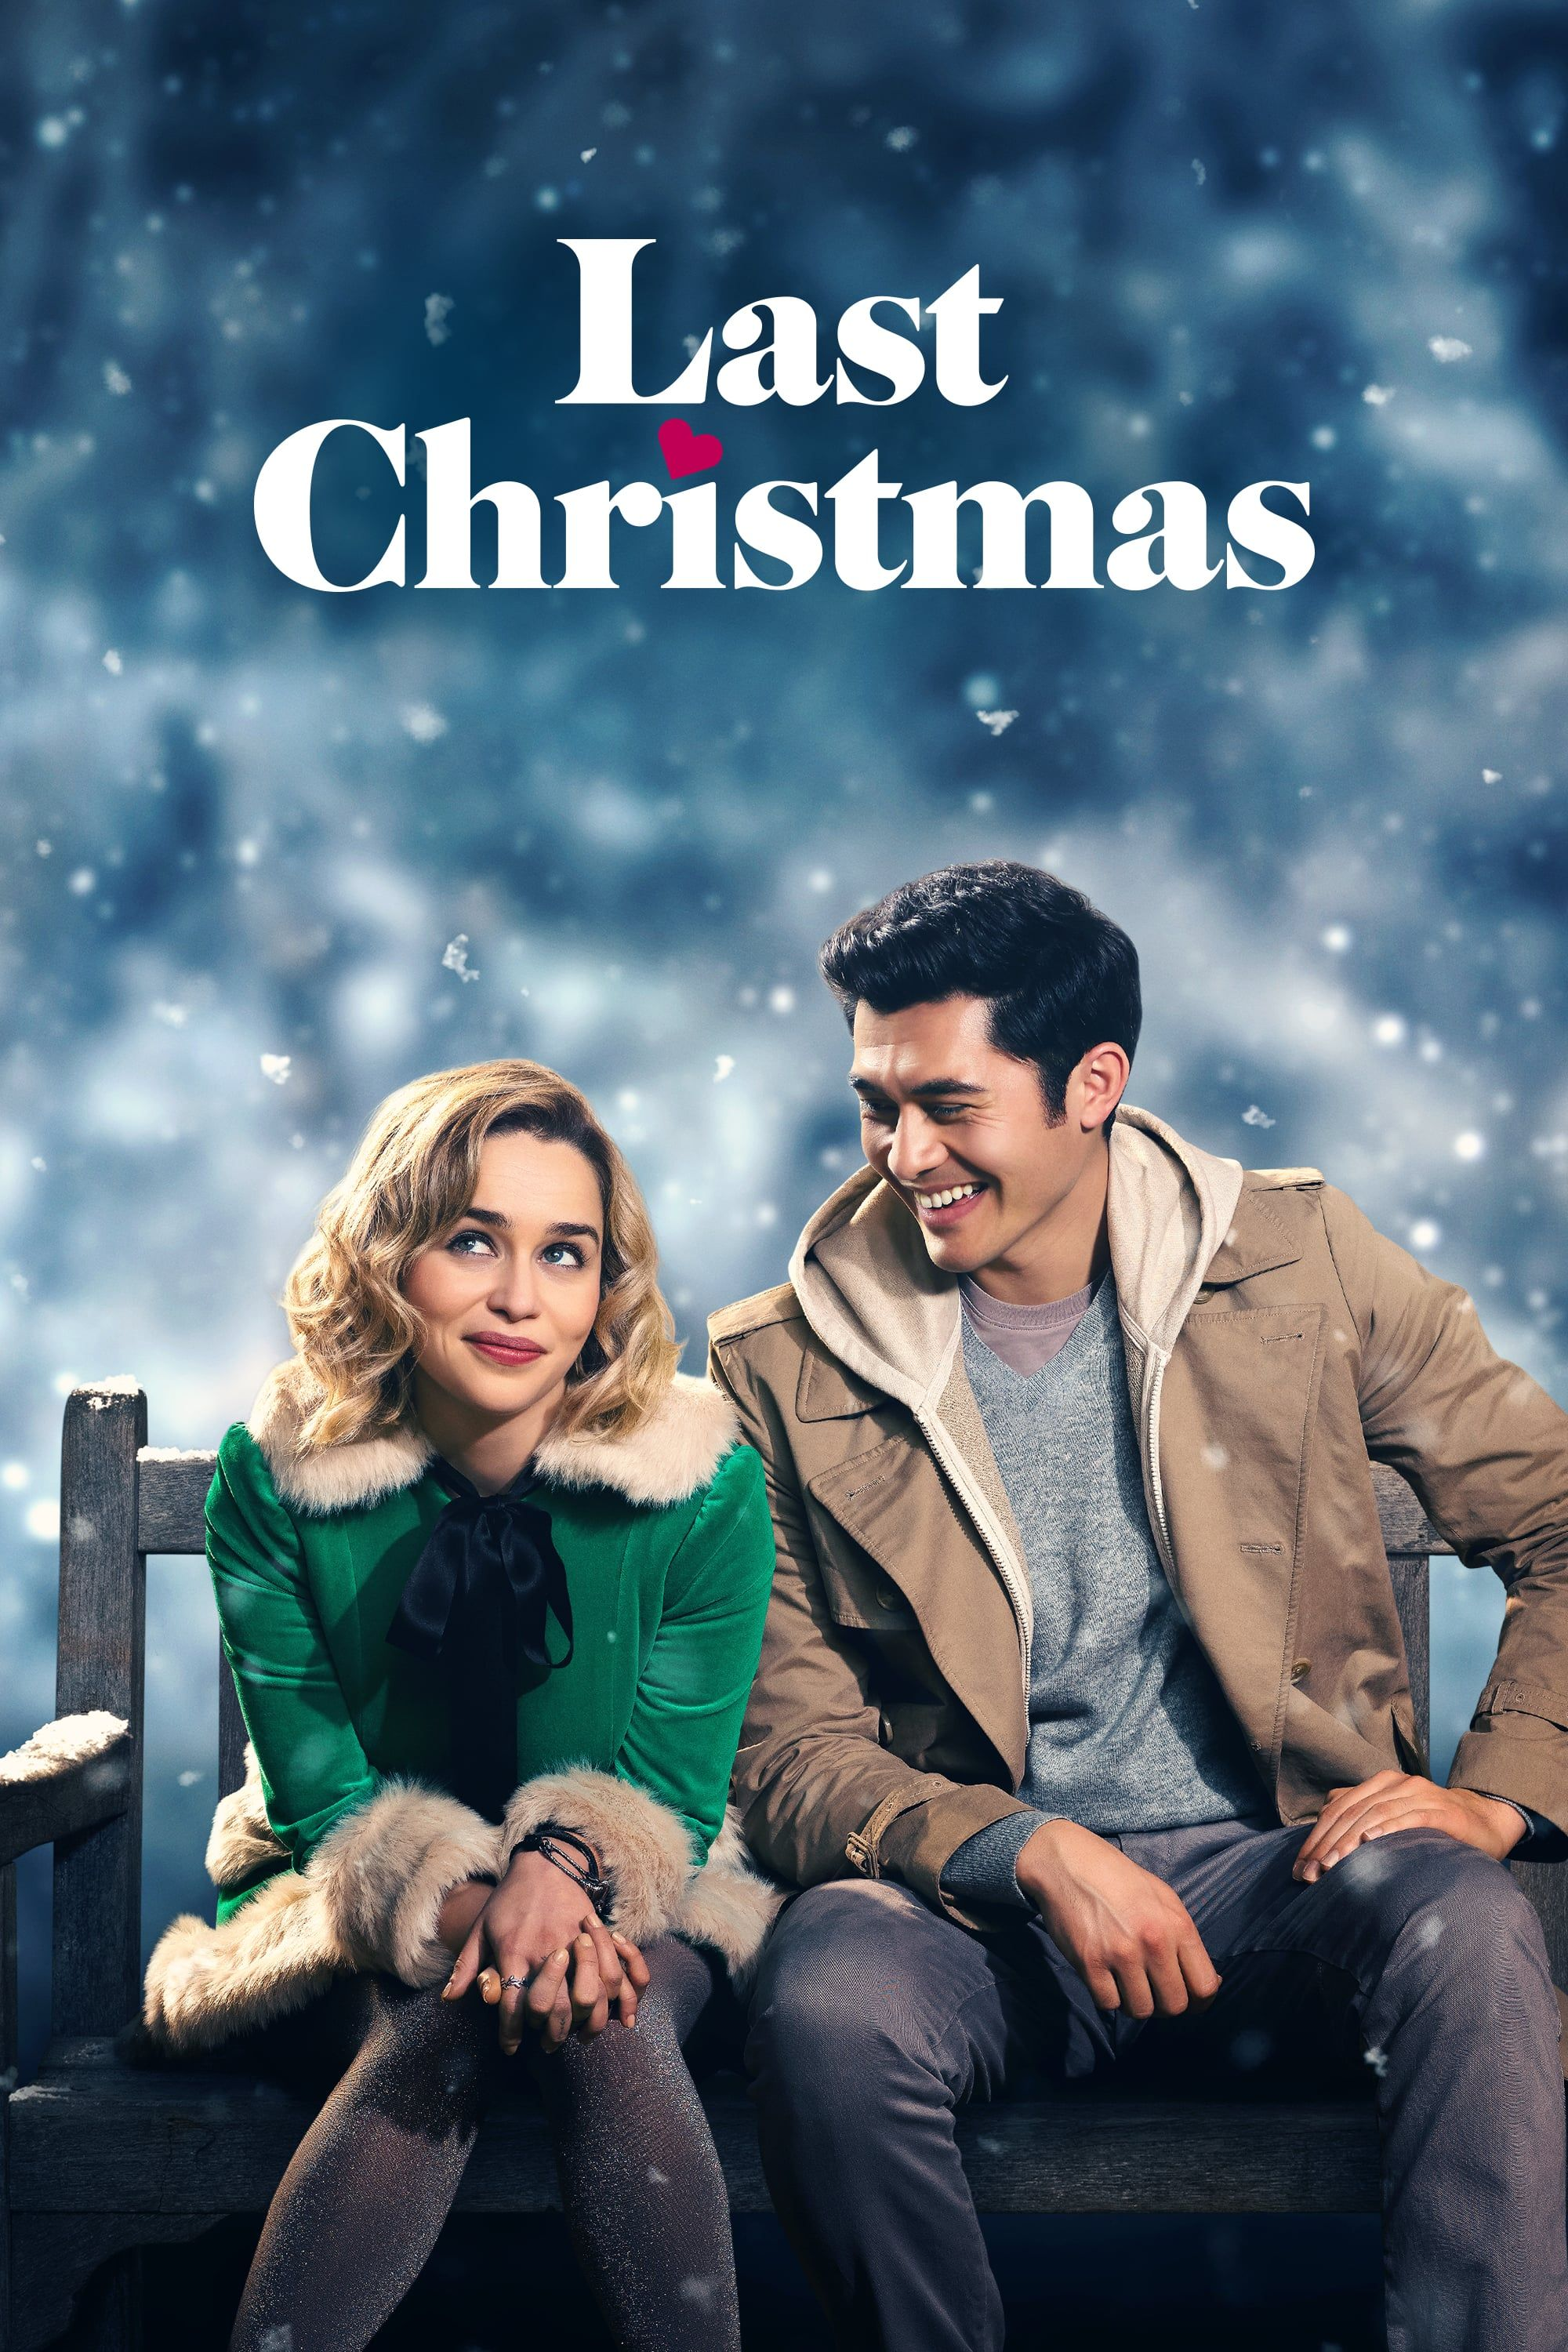 Last Christmas 2019 Release Date Trailer And How To Watch Last Christmas Full Movie Online Last Christmas Movie Last Christmas Free Movies Online